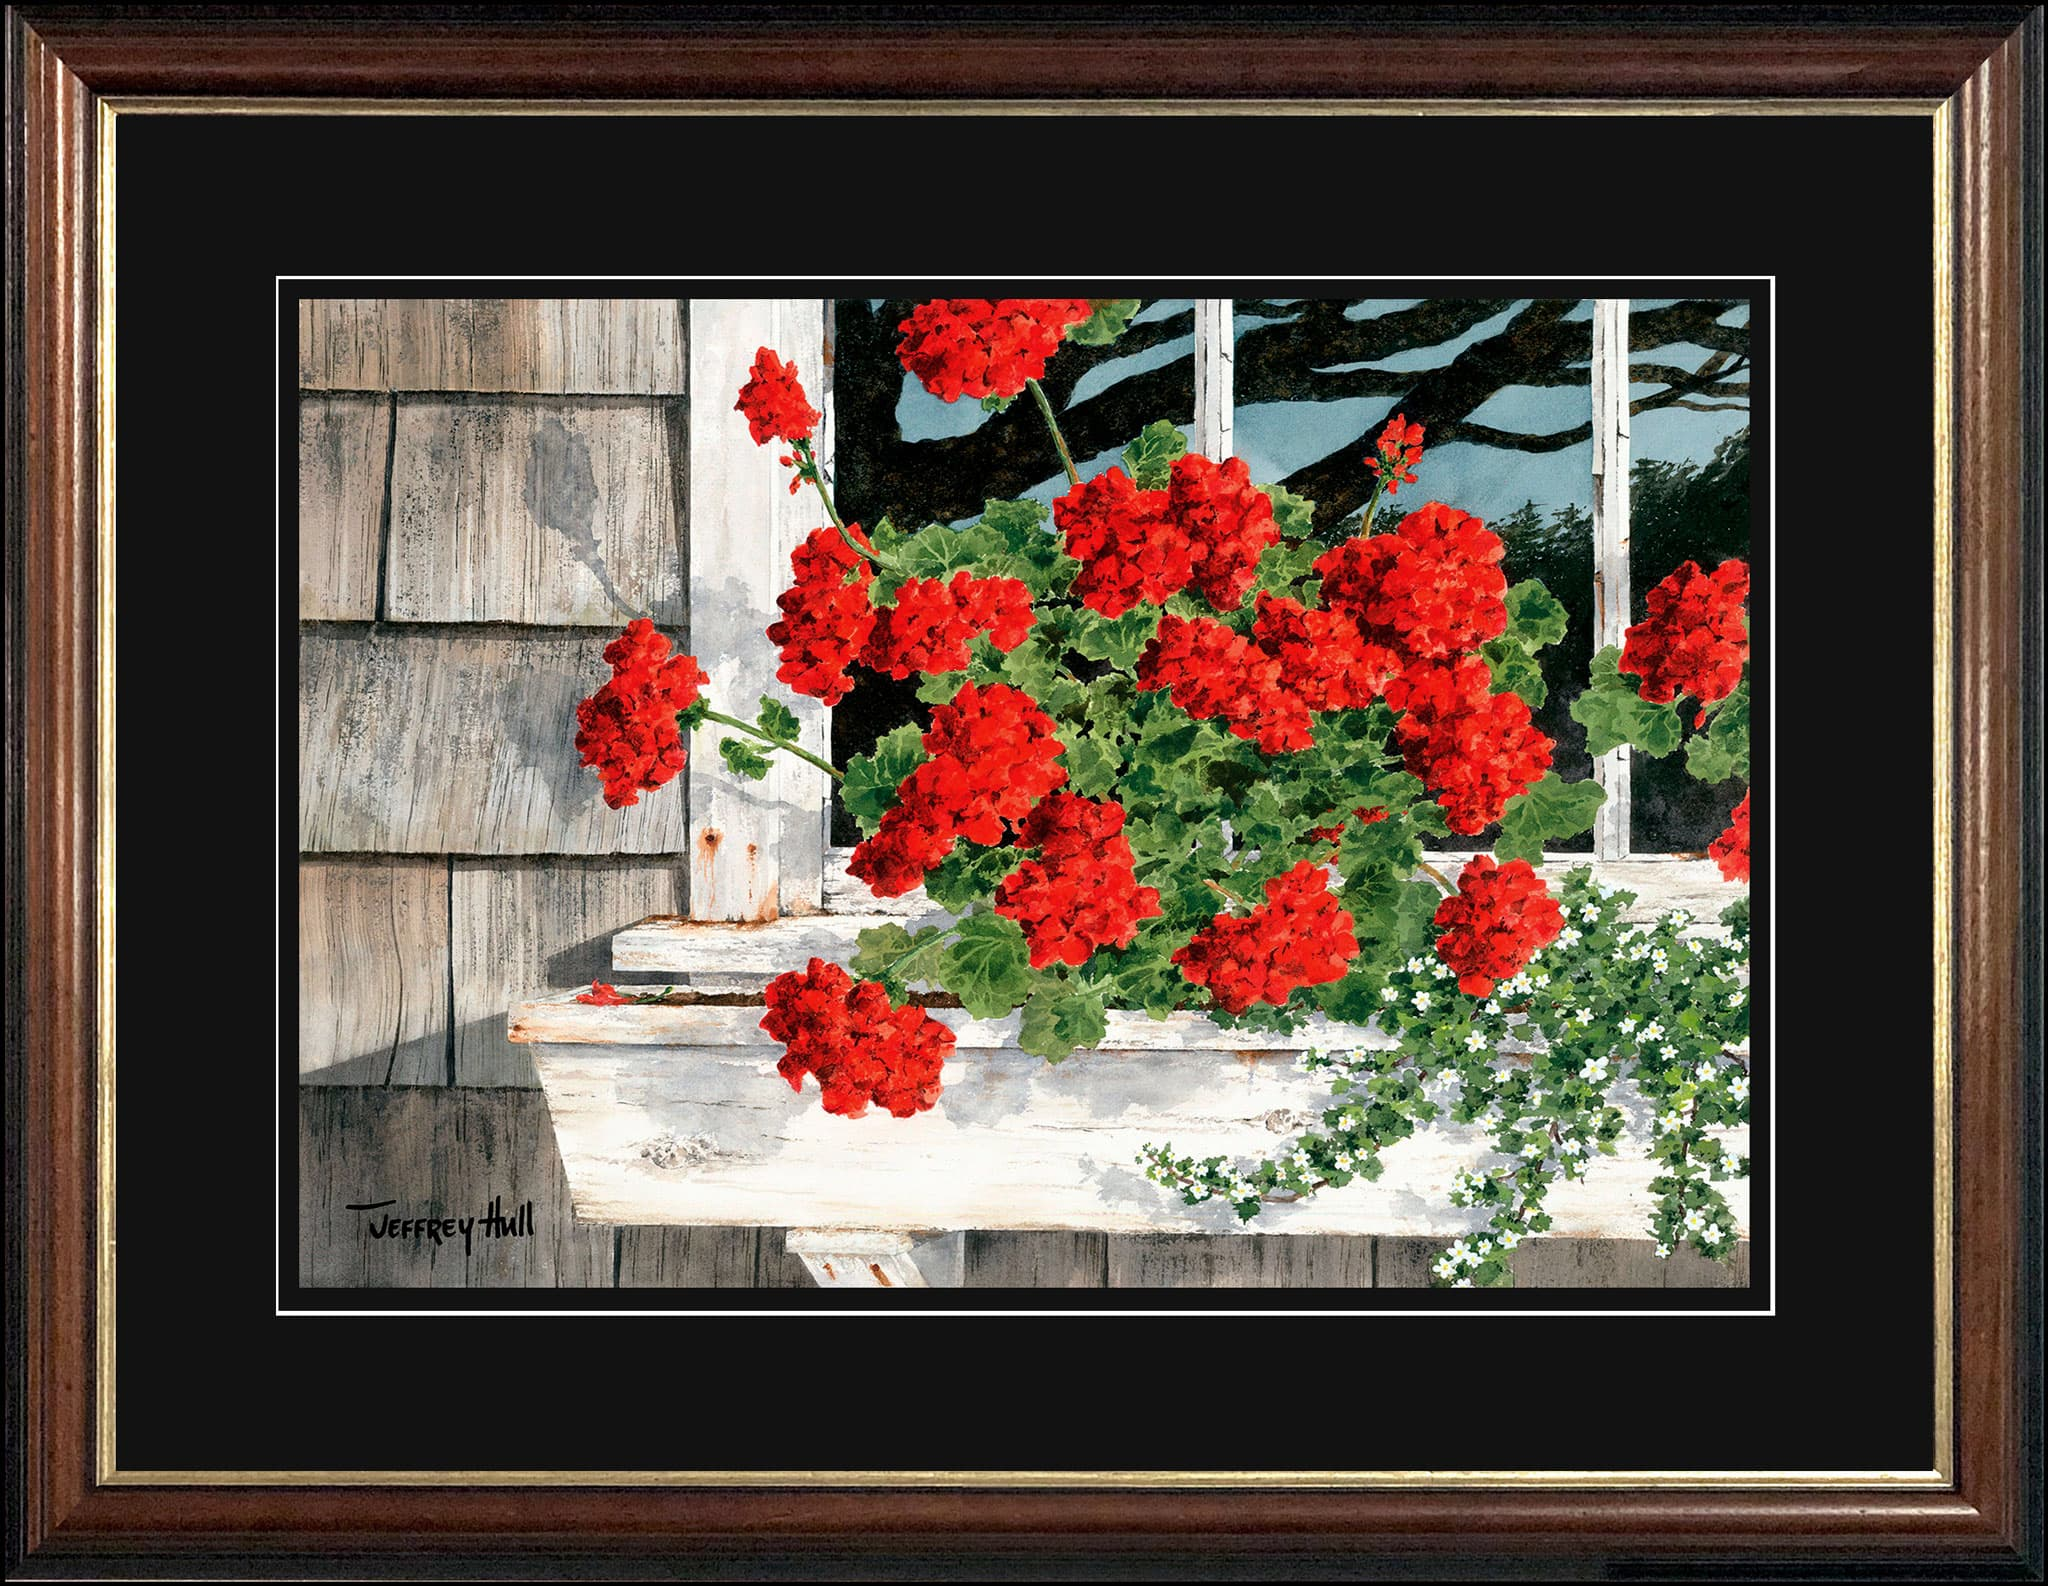 Carol_s-Geraniums-LimEd-Malabar-Jet-Black-4-Website-2021